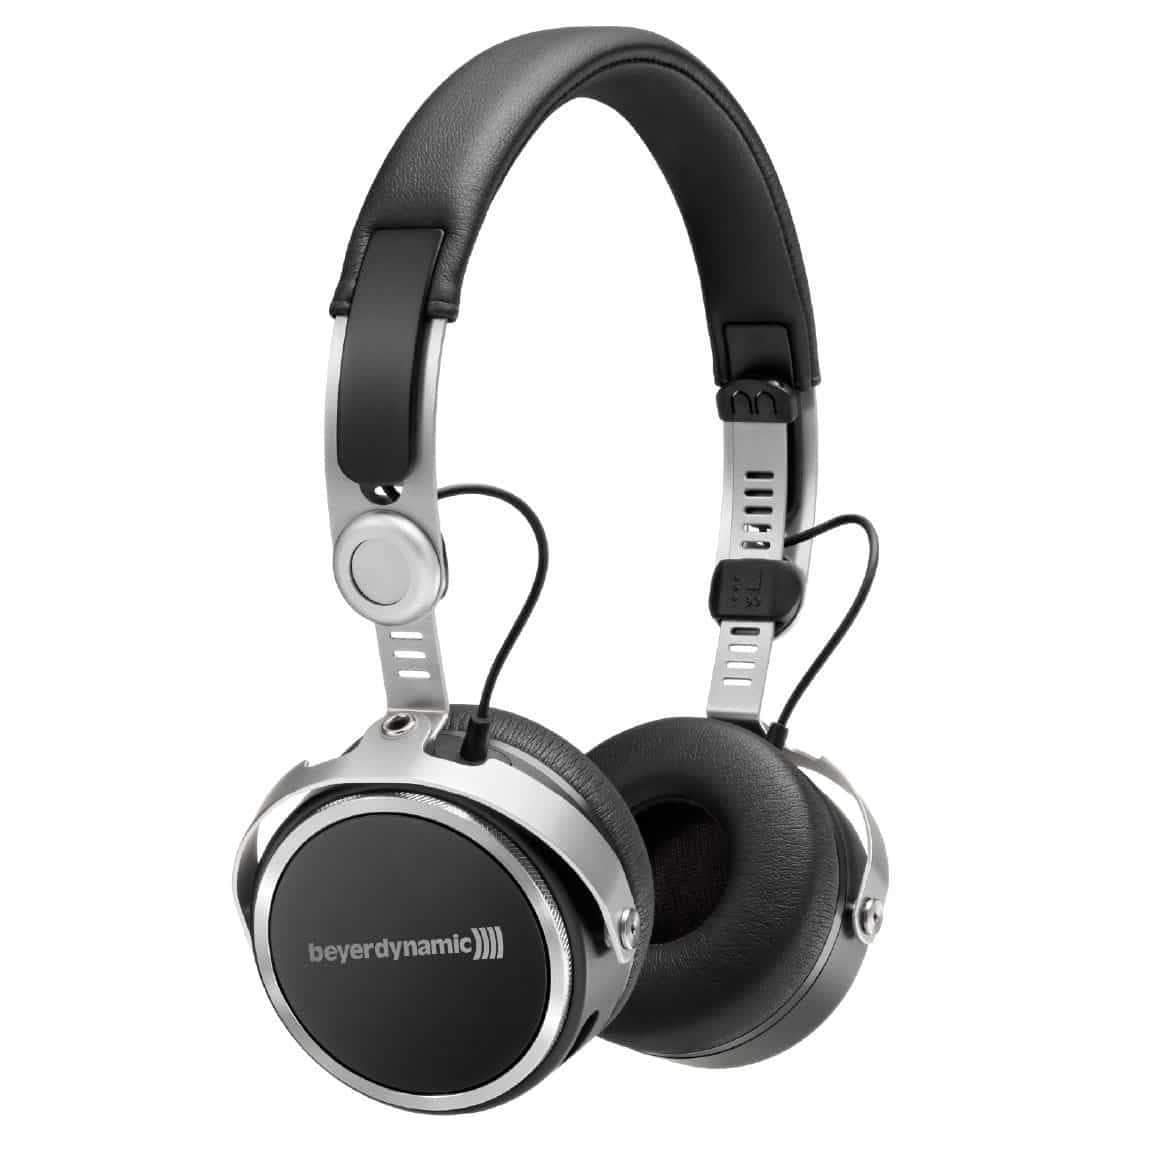 Beyerdynamic - Aventho Wirelessvs competitors